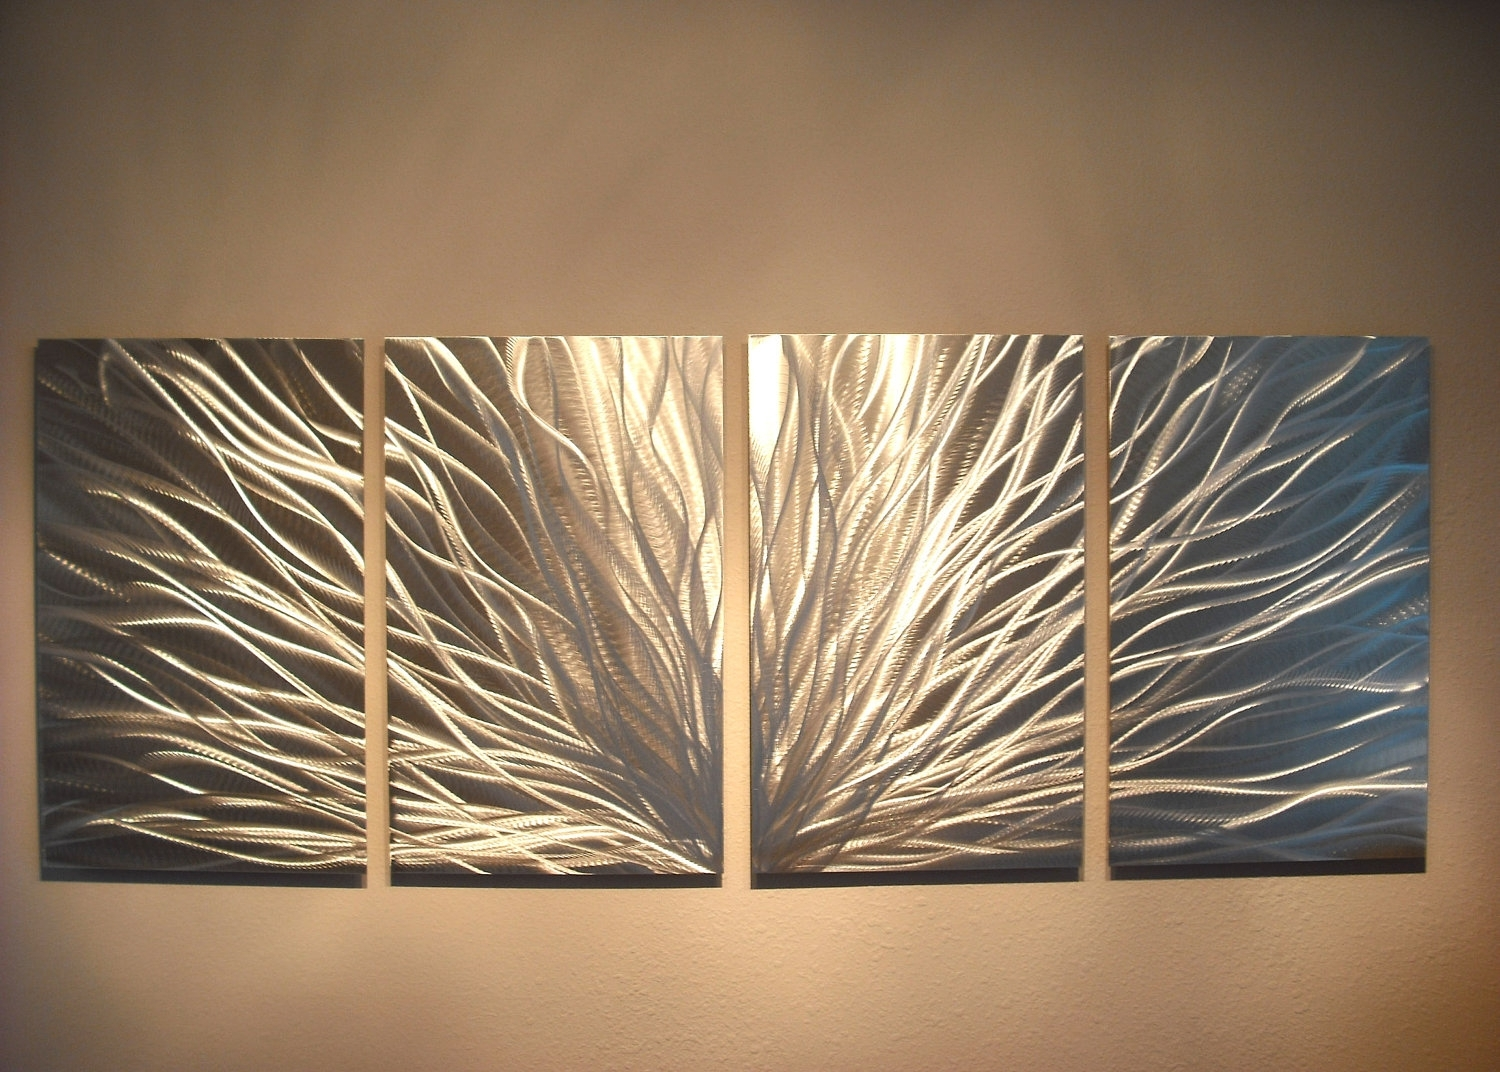 Radiance – Abstract Metal Wall Art Contemporary Modern Decor On Storenvy With Recent Modern Wall Art (Gallery 6 of 15)